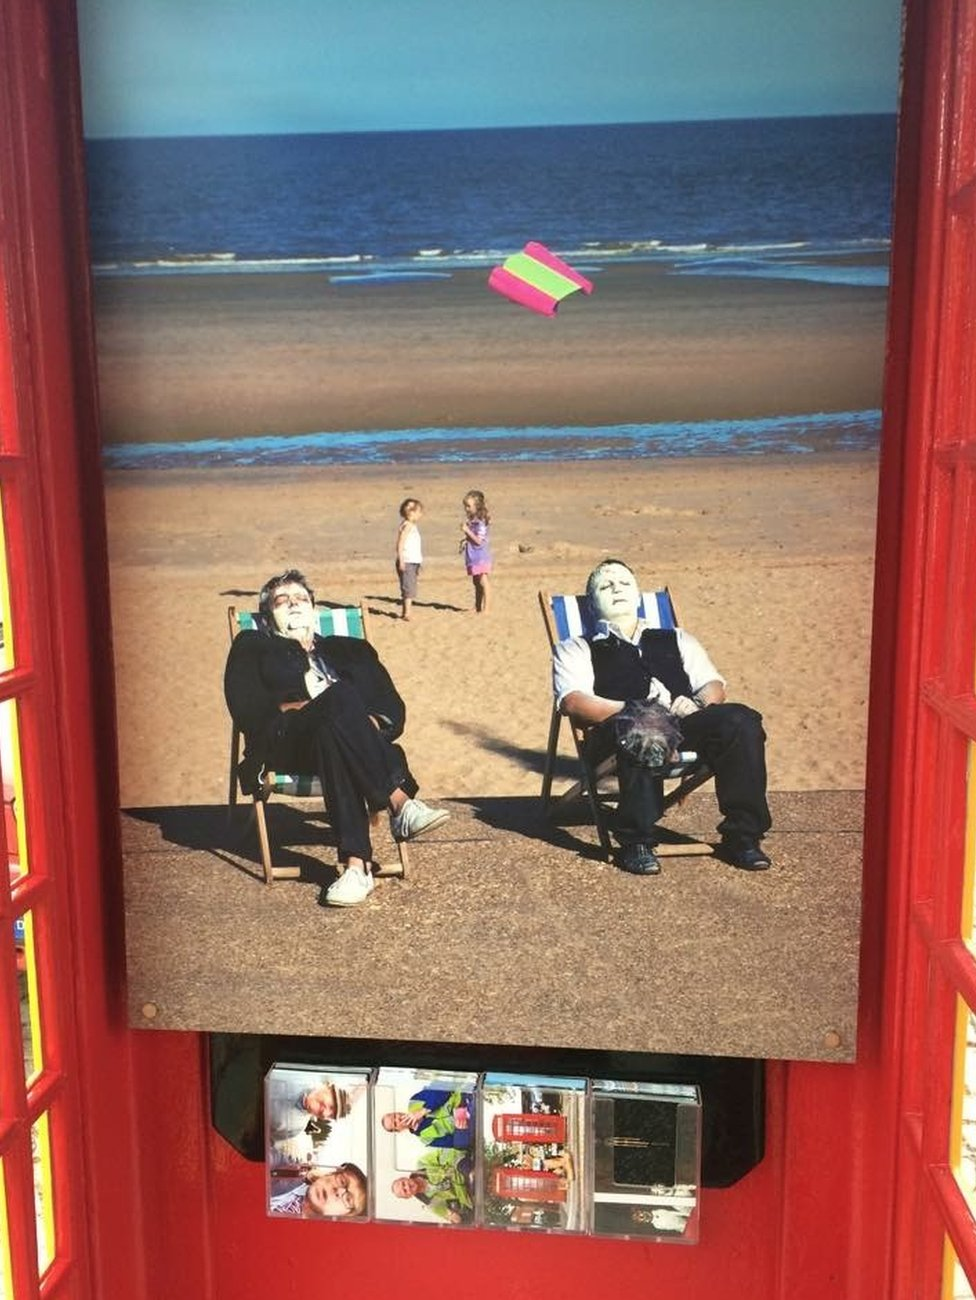 Inside of the phone box